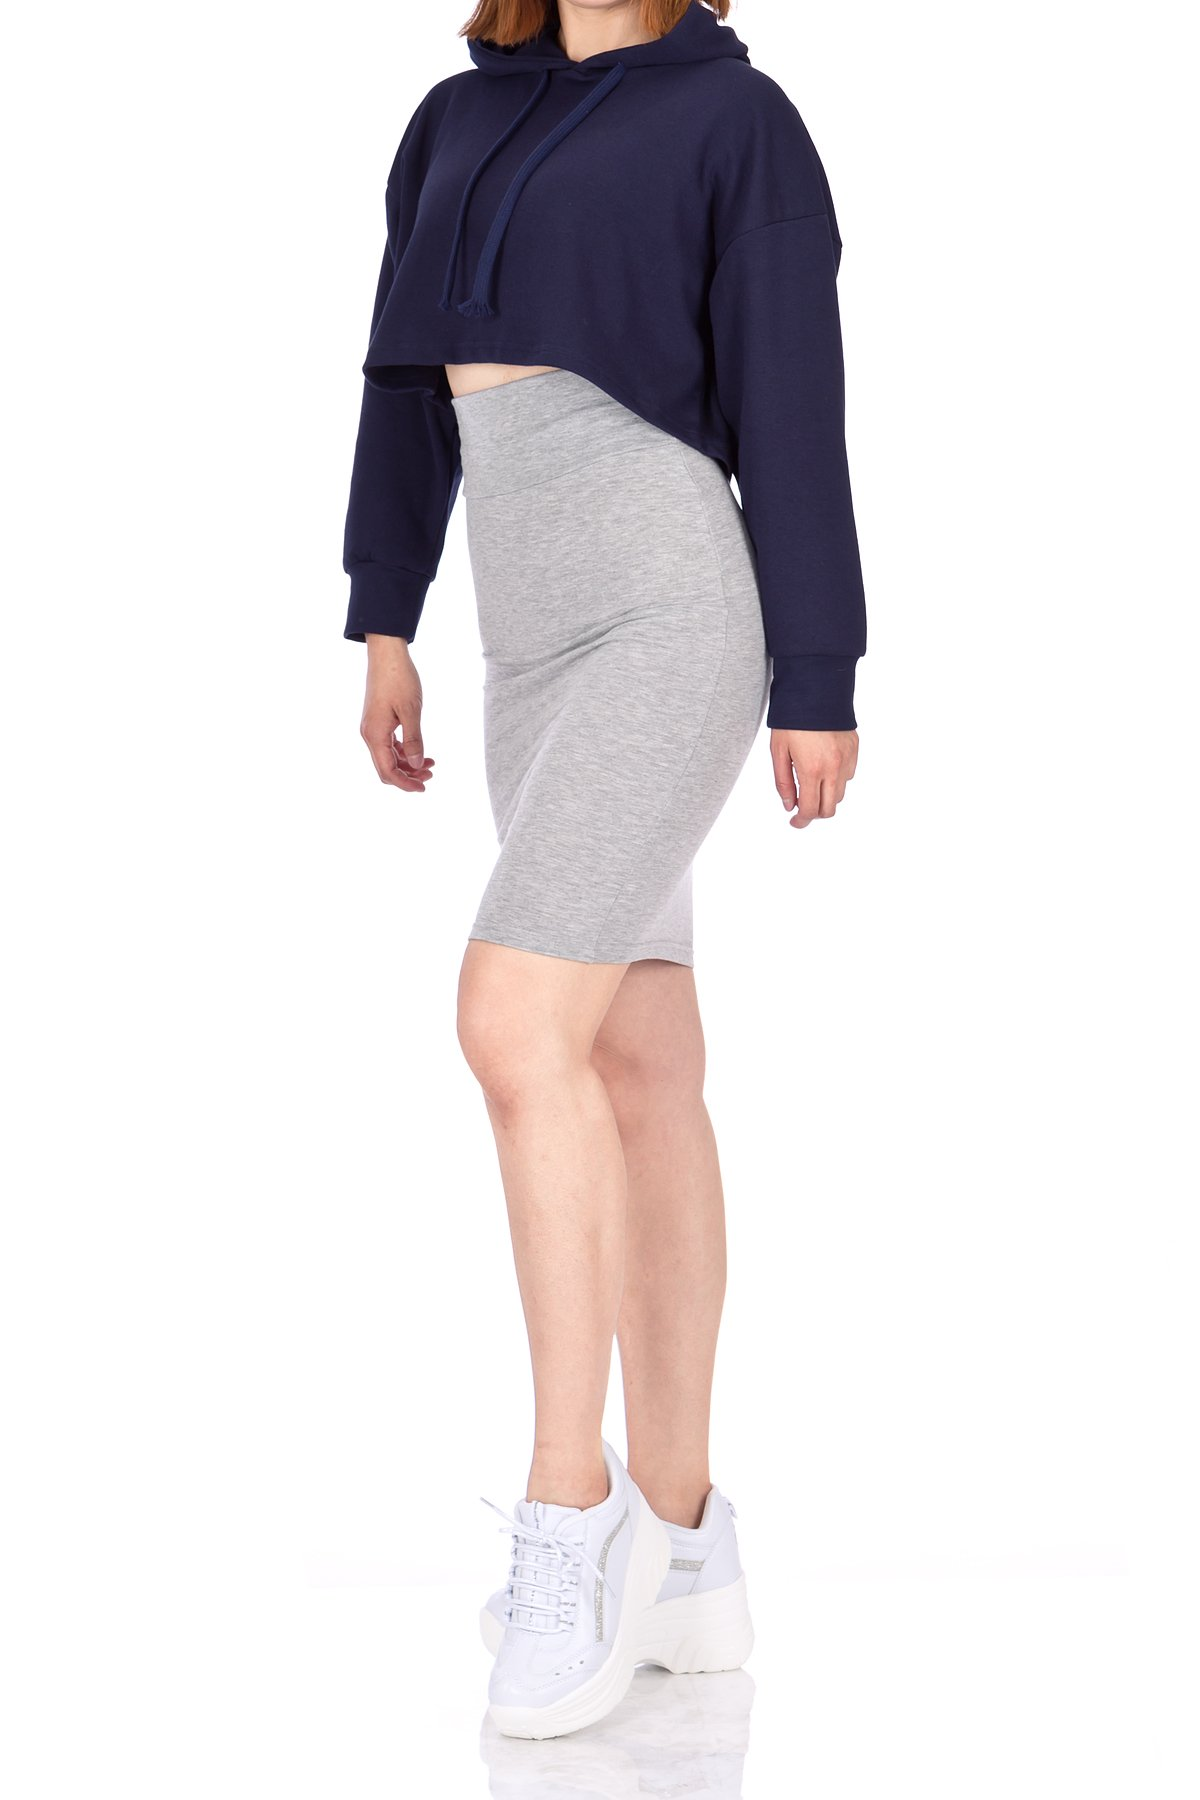 Every Occasion Stretch Pull on Wide High Waist Bodycon Pencil Knee Length Midi Skirt Melange 02